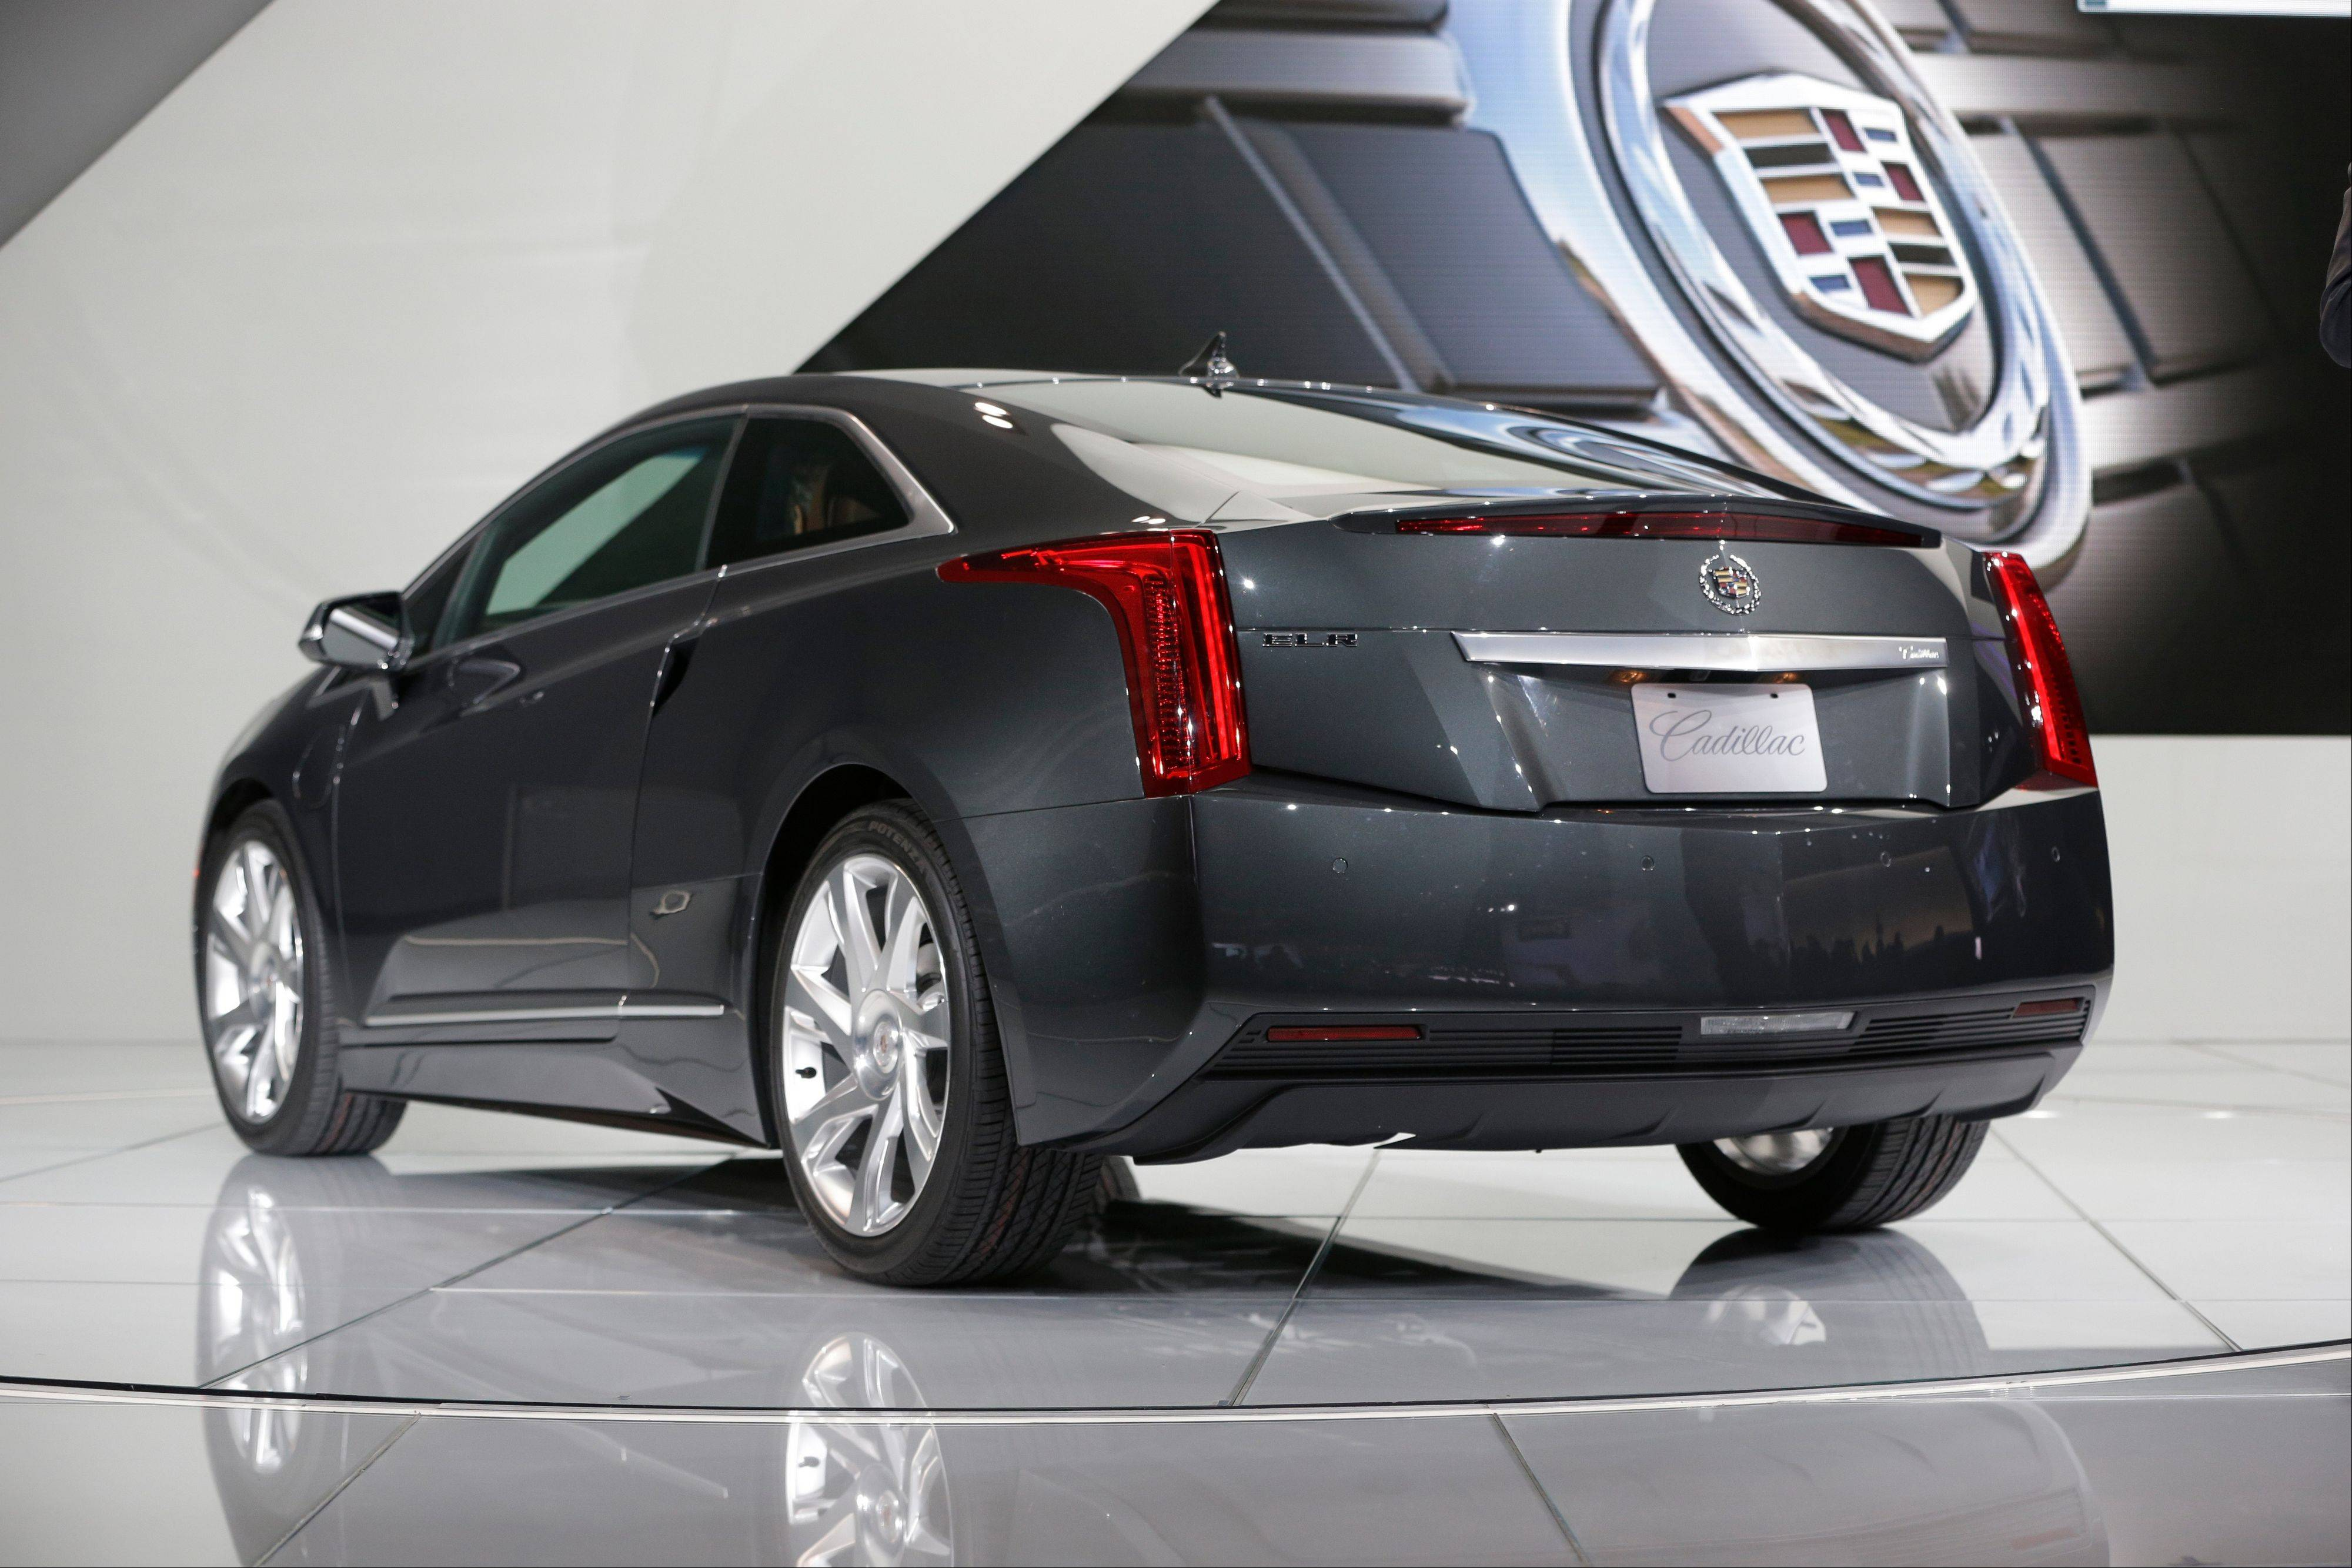 The Cadillac ELR is unveiled during the North American International Auto Show in Detroit, Tuesday, Jan. 15, 2013.